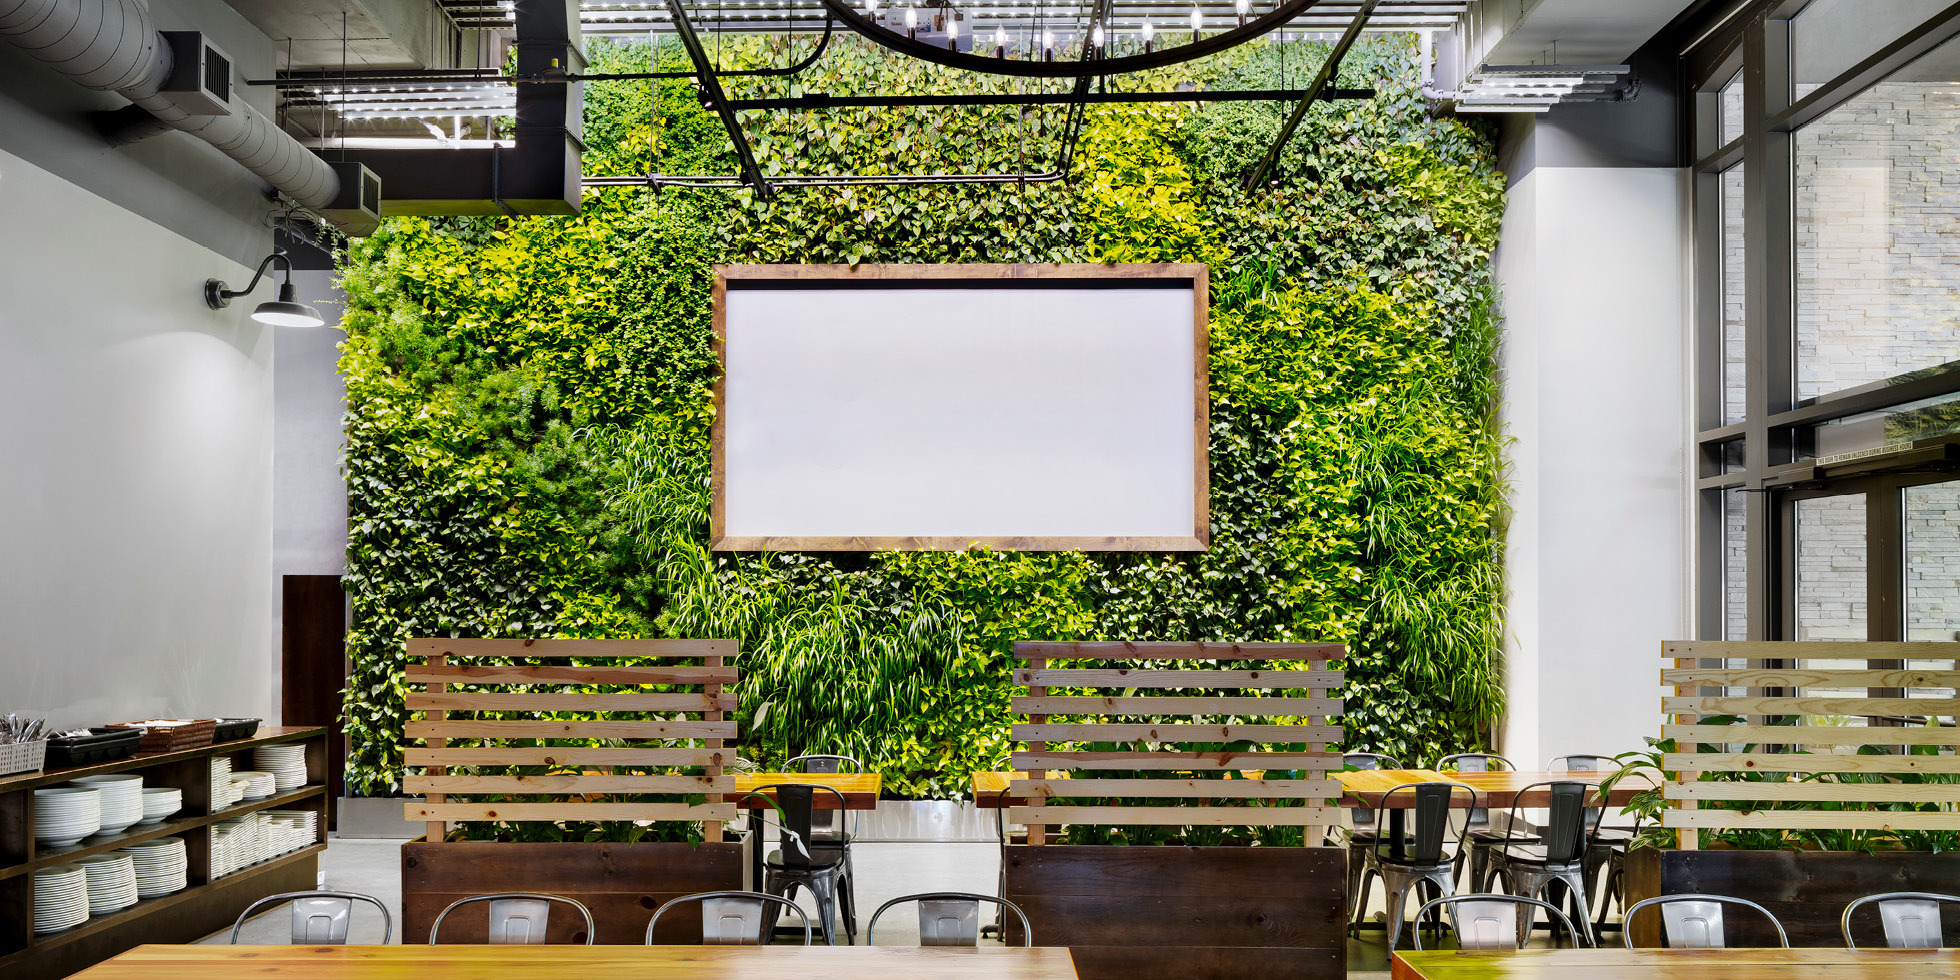 Steins Beer Garden Living Wall by Habitat Horticulture - View 4